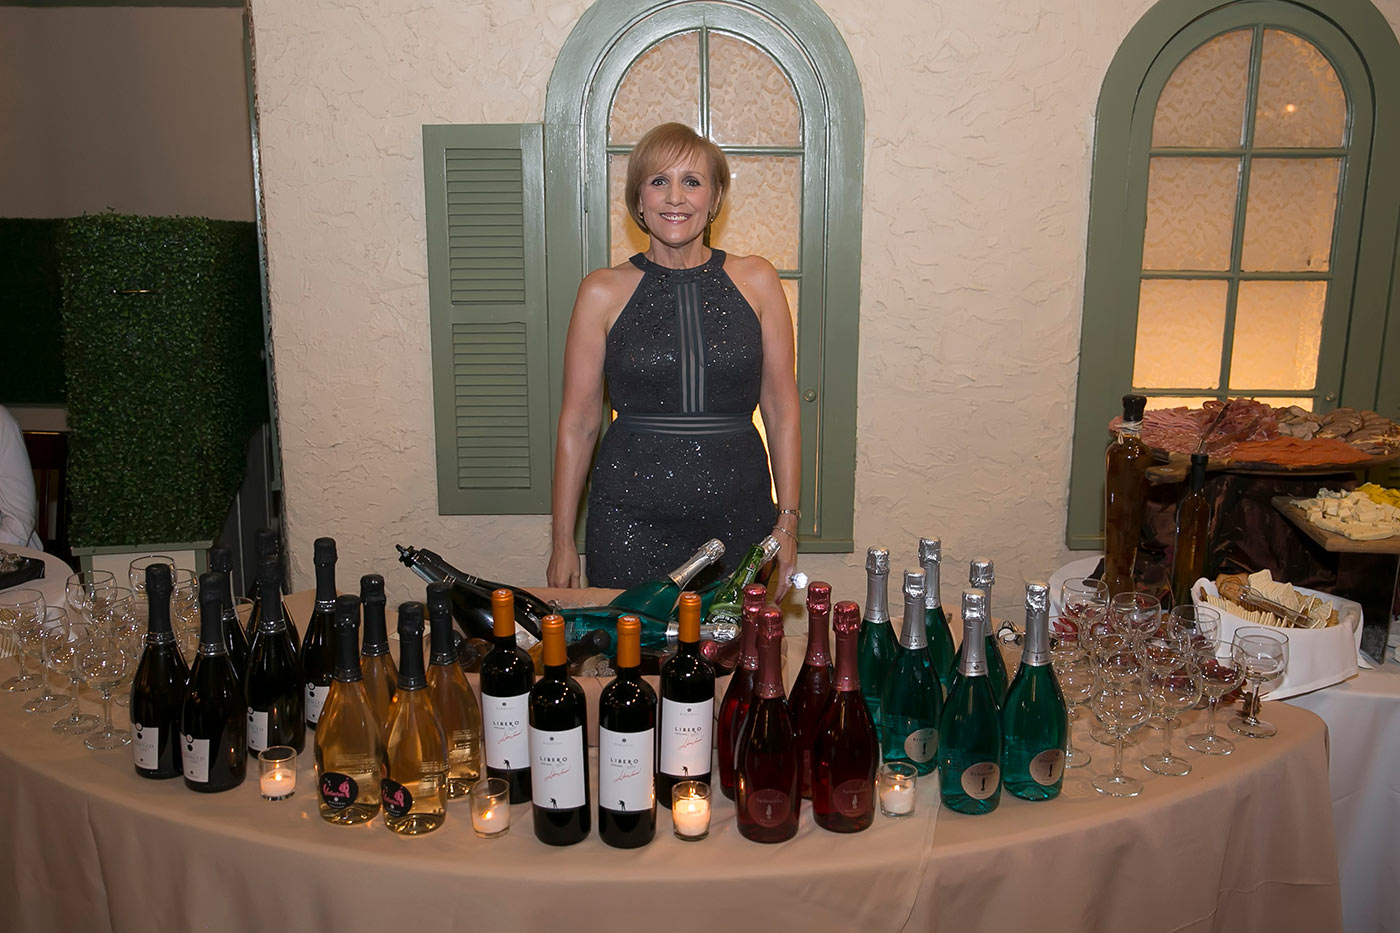 woman serving wine smiles for photo